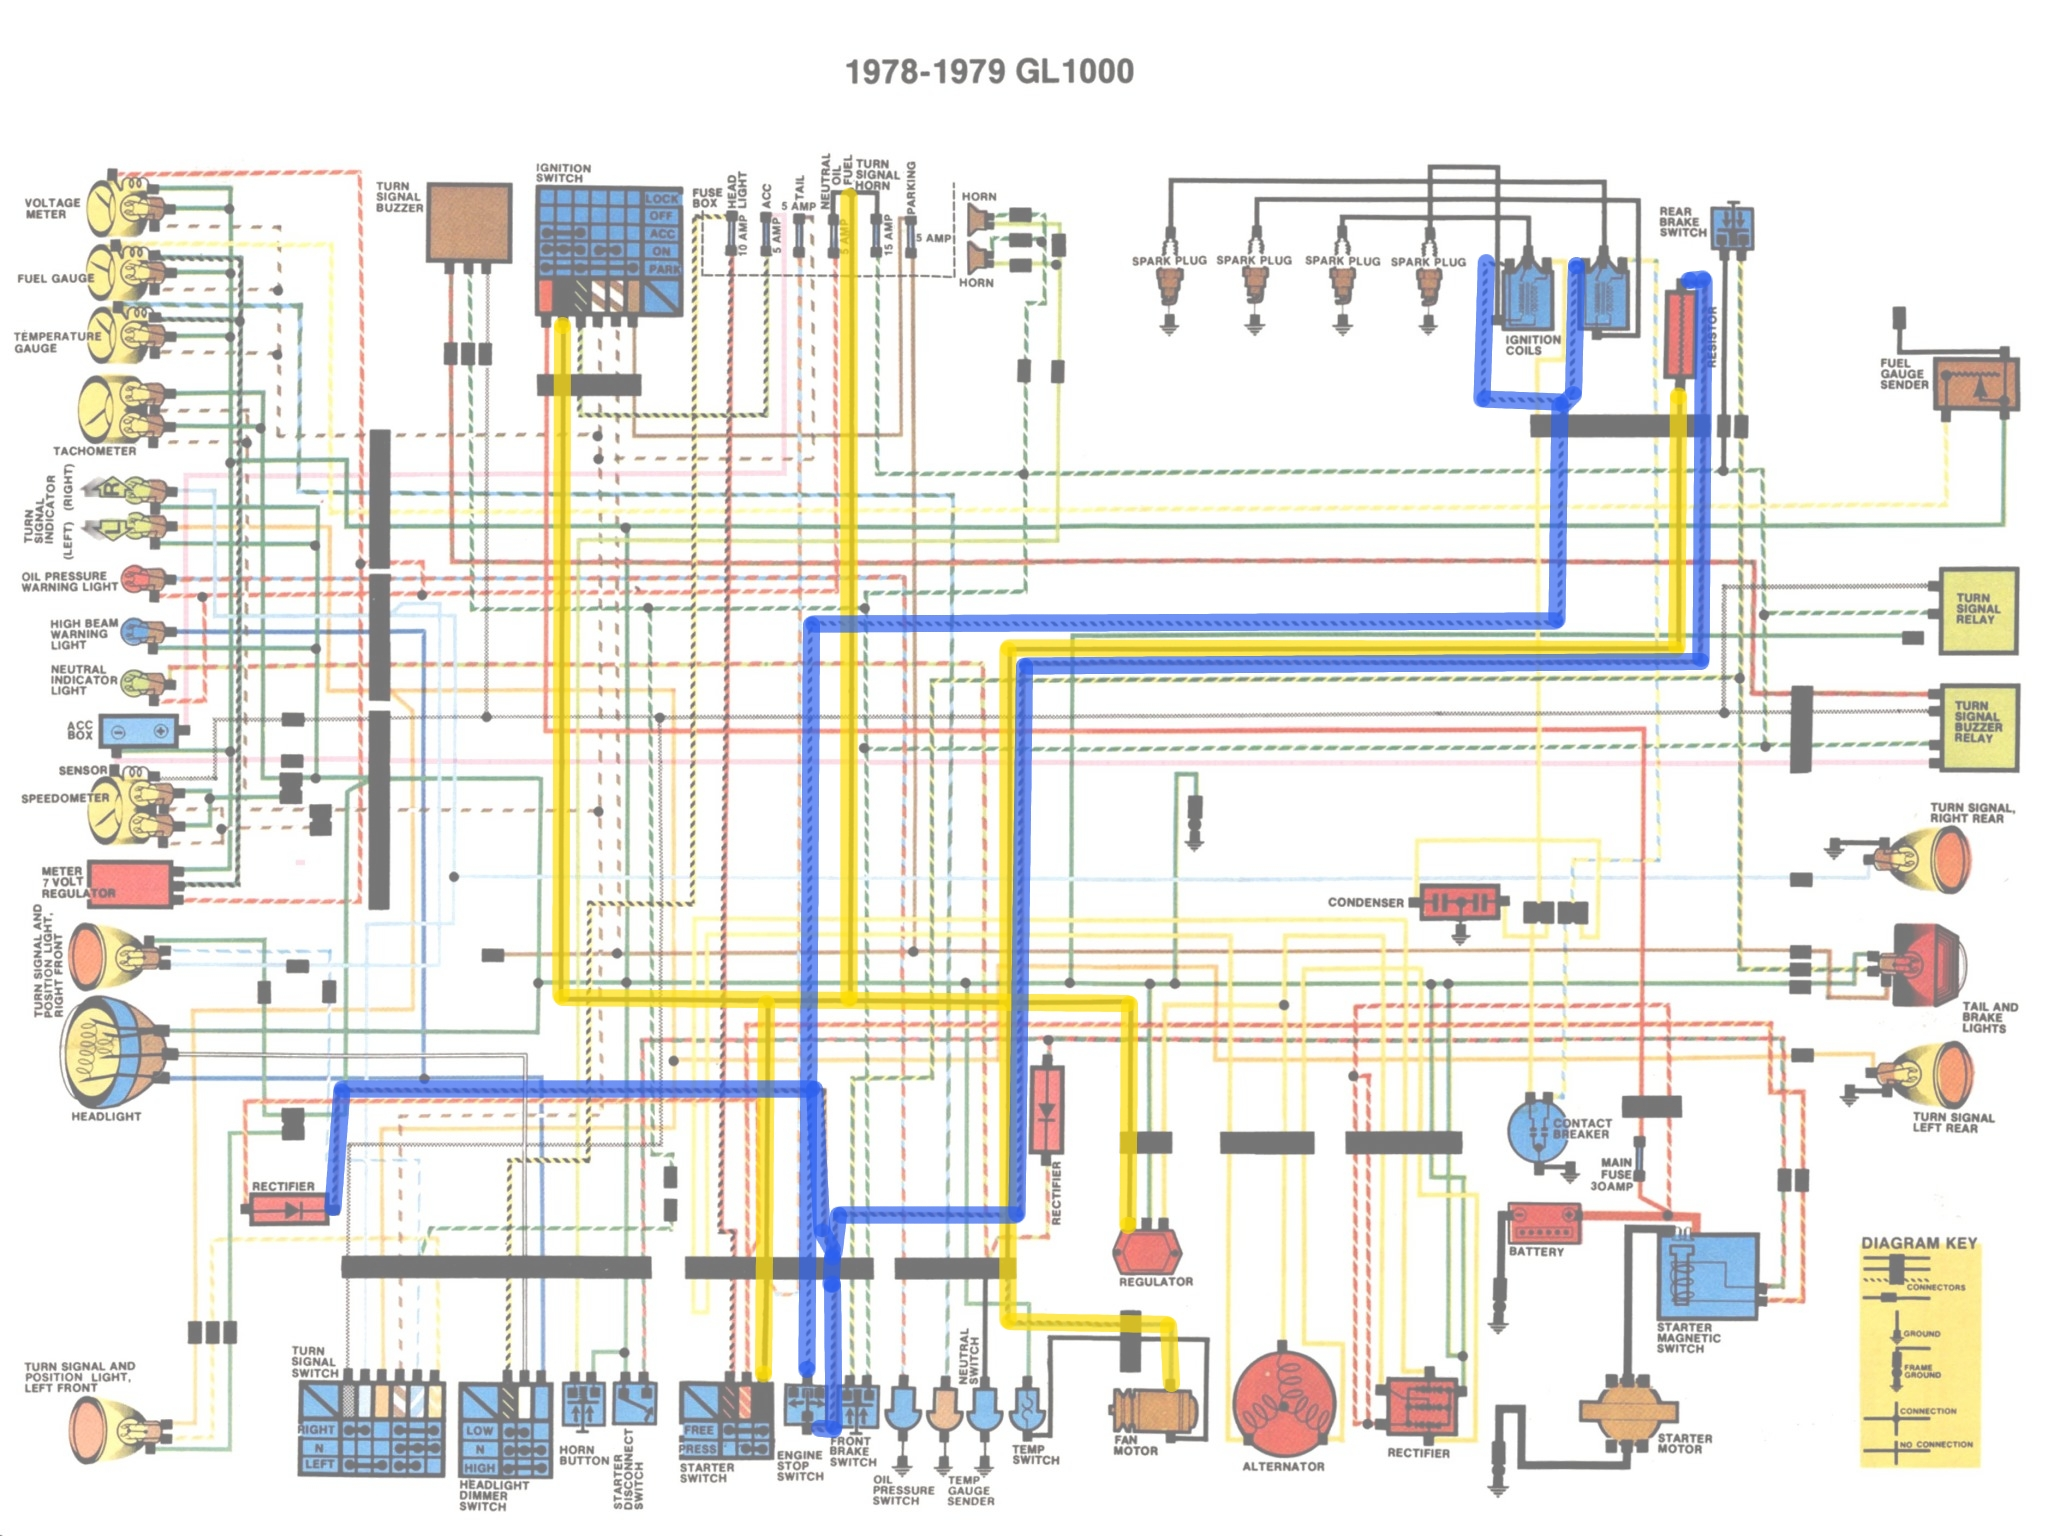 1978 79 Gl1000 Colour Schematic B